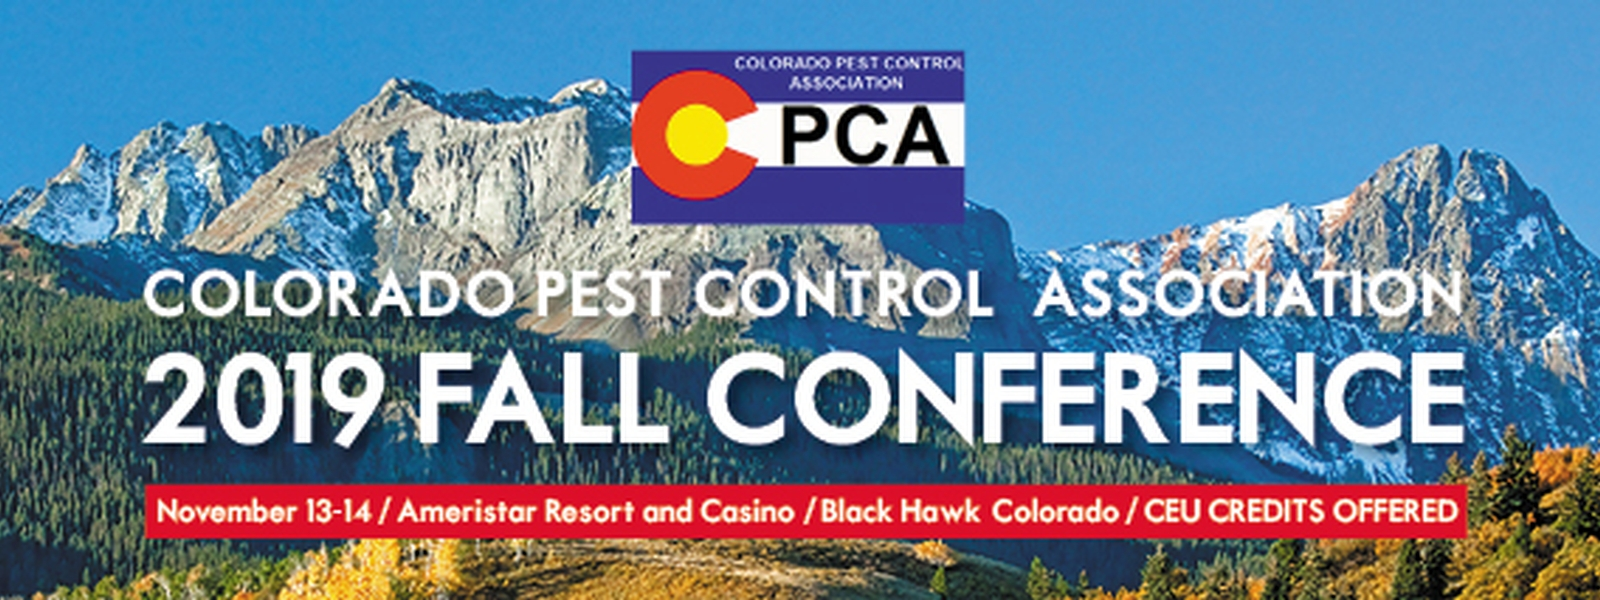 CPCA Fall Conference